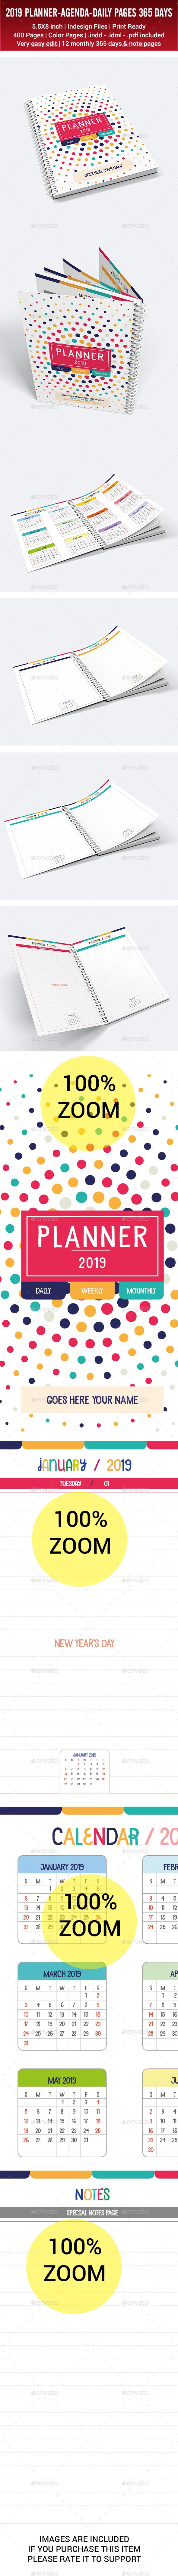 Daily Planner Agenda 2019 365 Days 1 Year - Stationery Print Templates